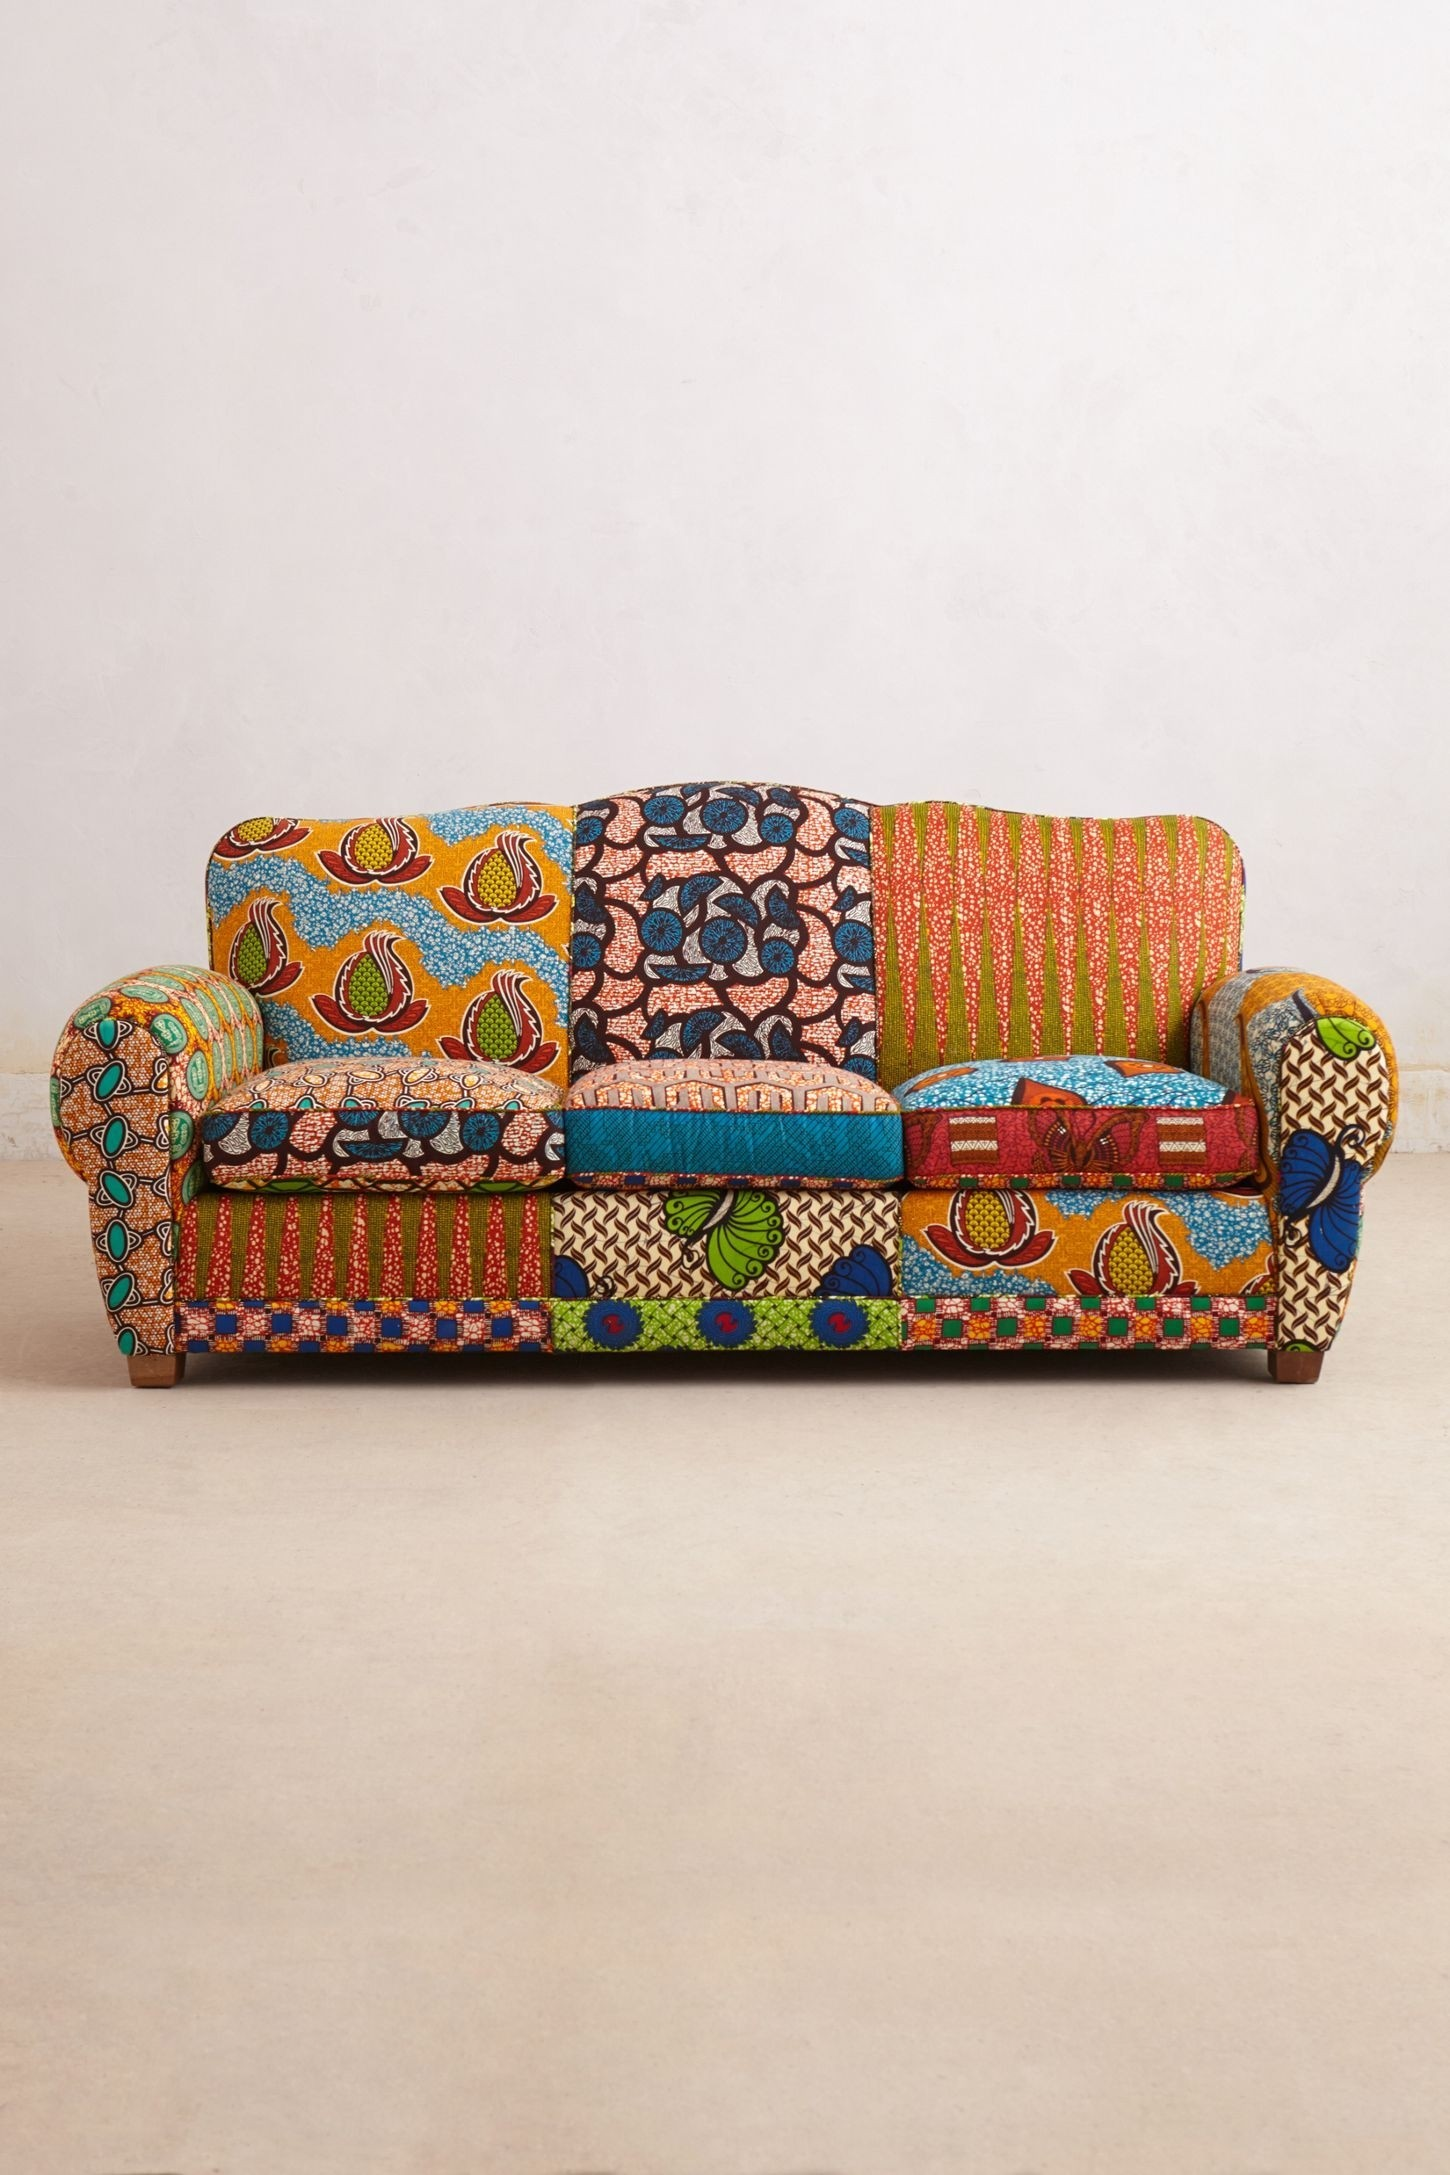 Ordinaire Print Fabric Sofas 1